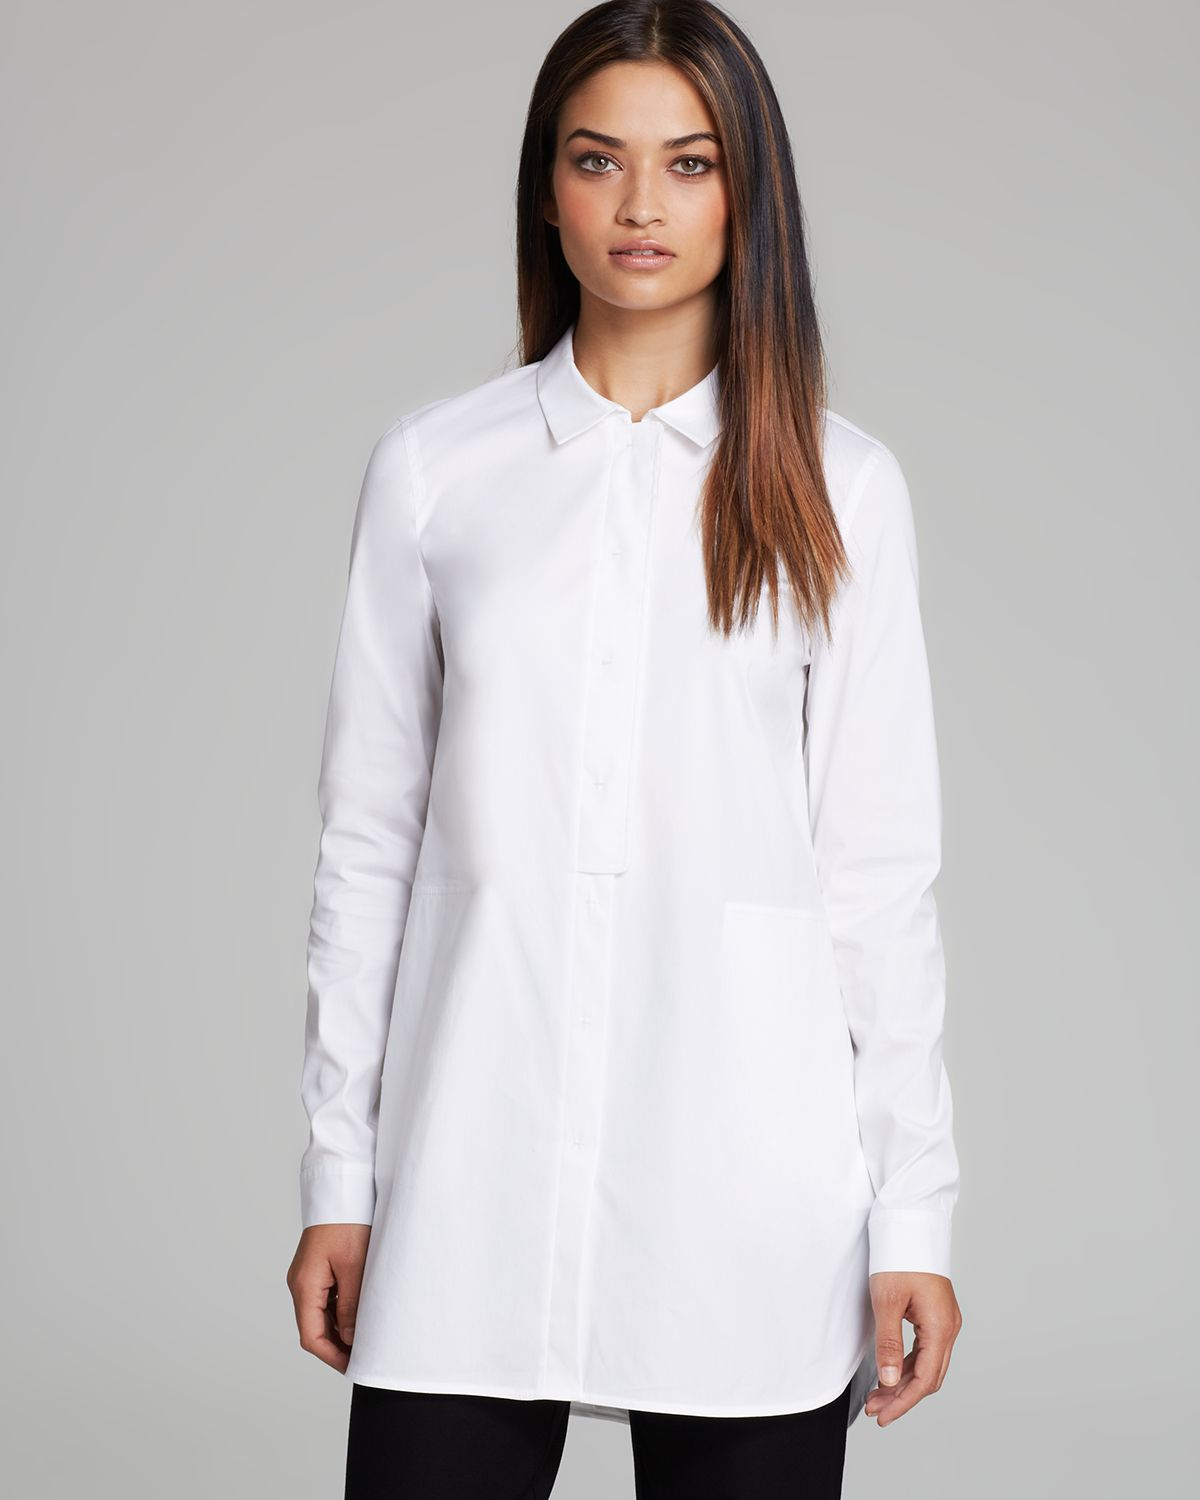 lafayette 148 new york suzzette blouse in white lyst